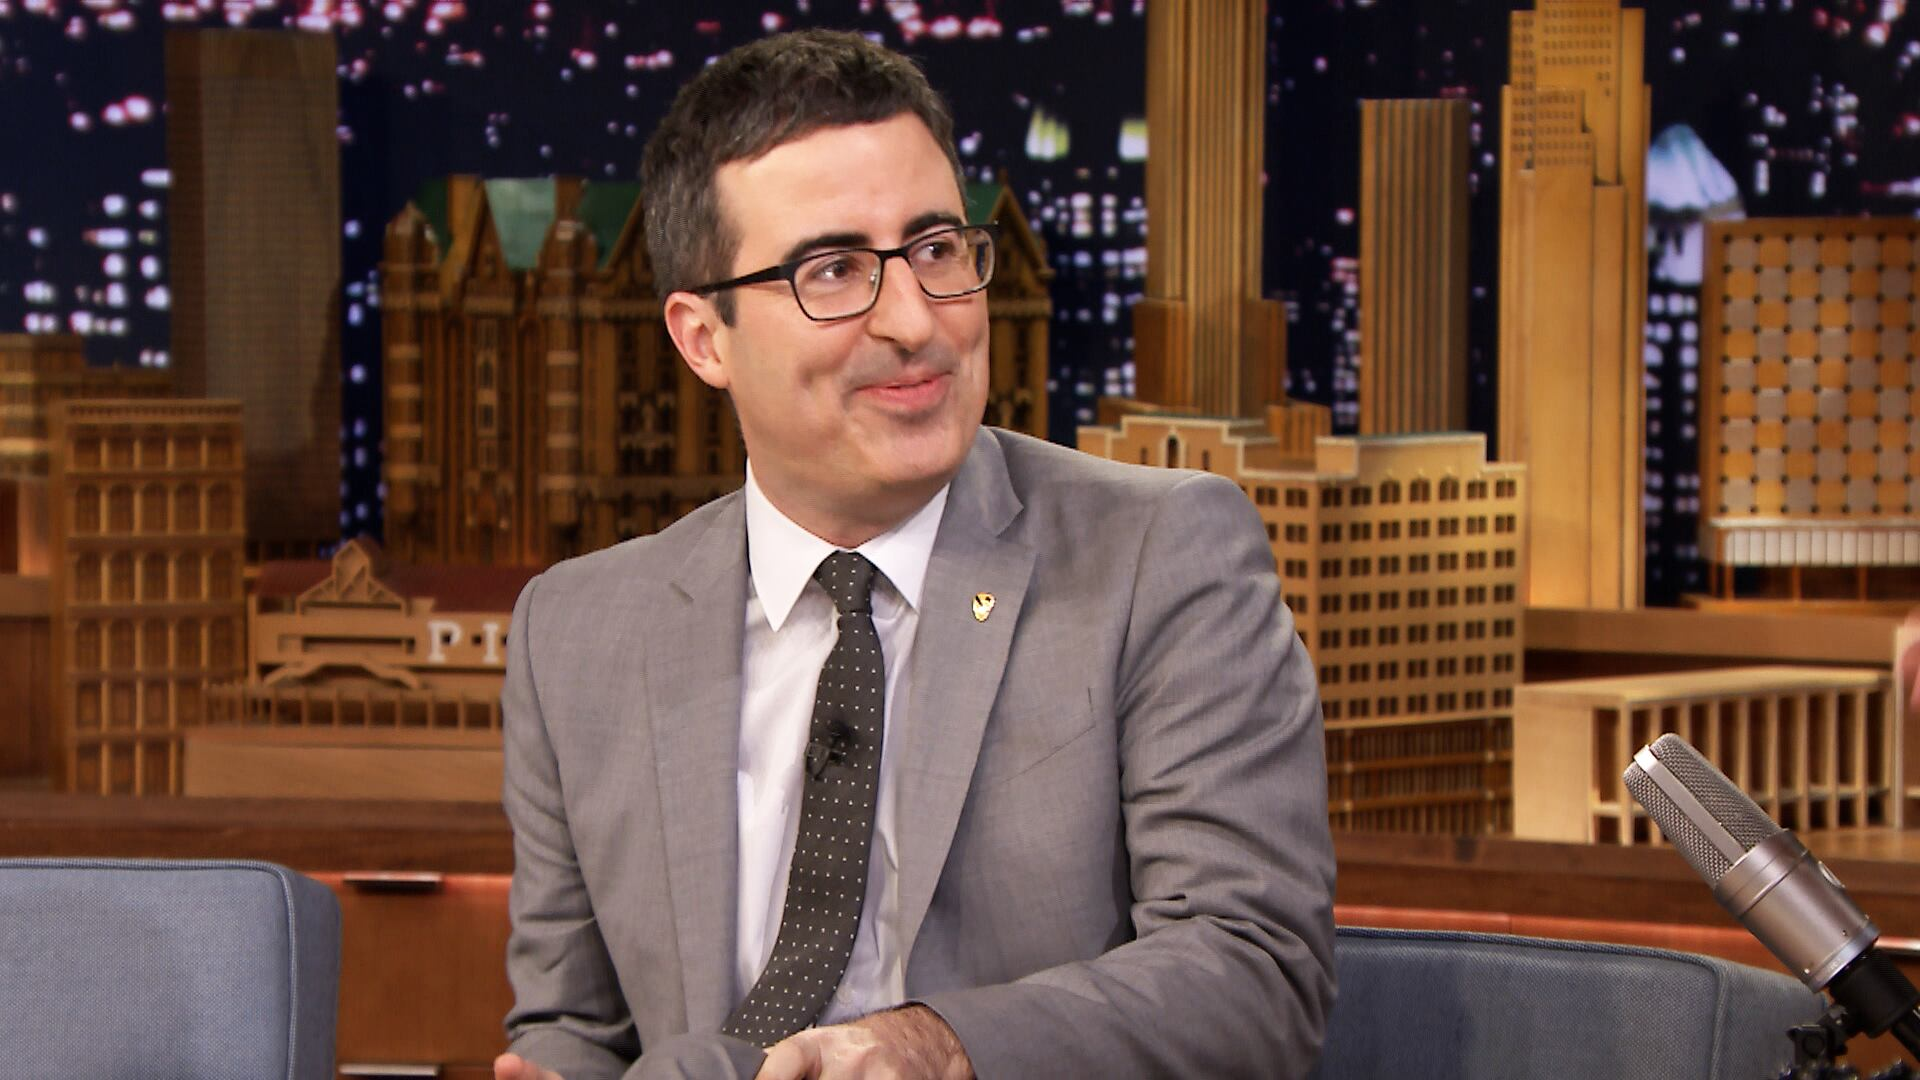 John Oliver Knows Richard Pryor's Stand-Up by Heart